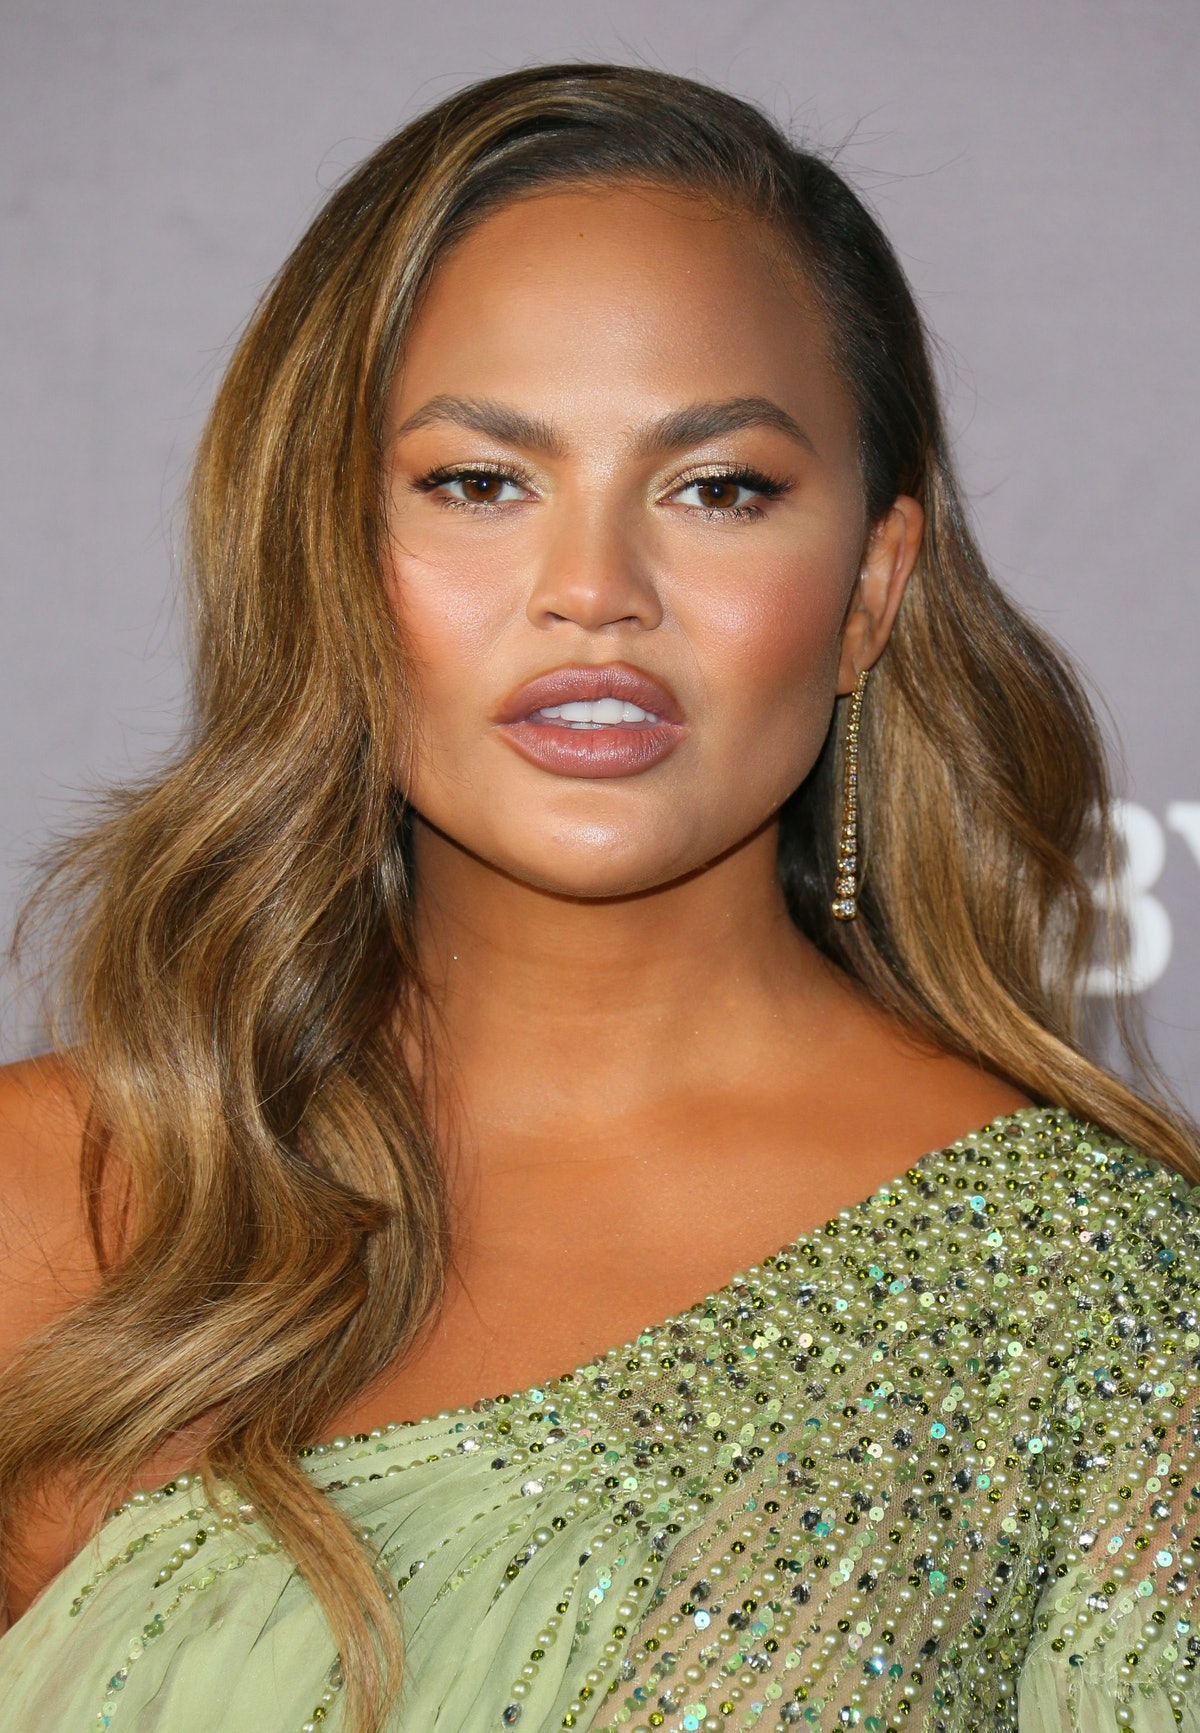 Chrissy Teigen named one of the most ridiculous (bad) Sagittarius celebrities.